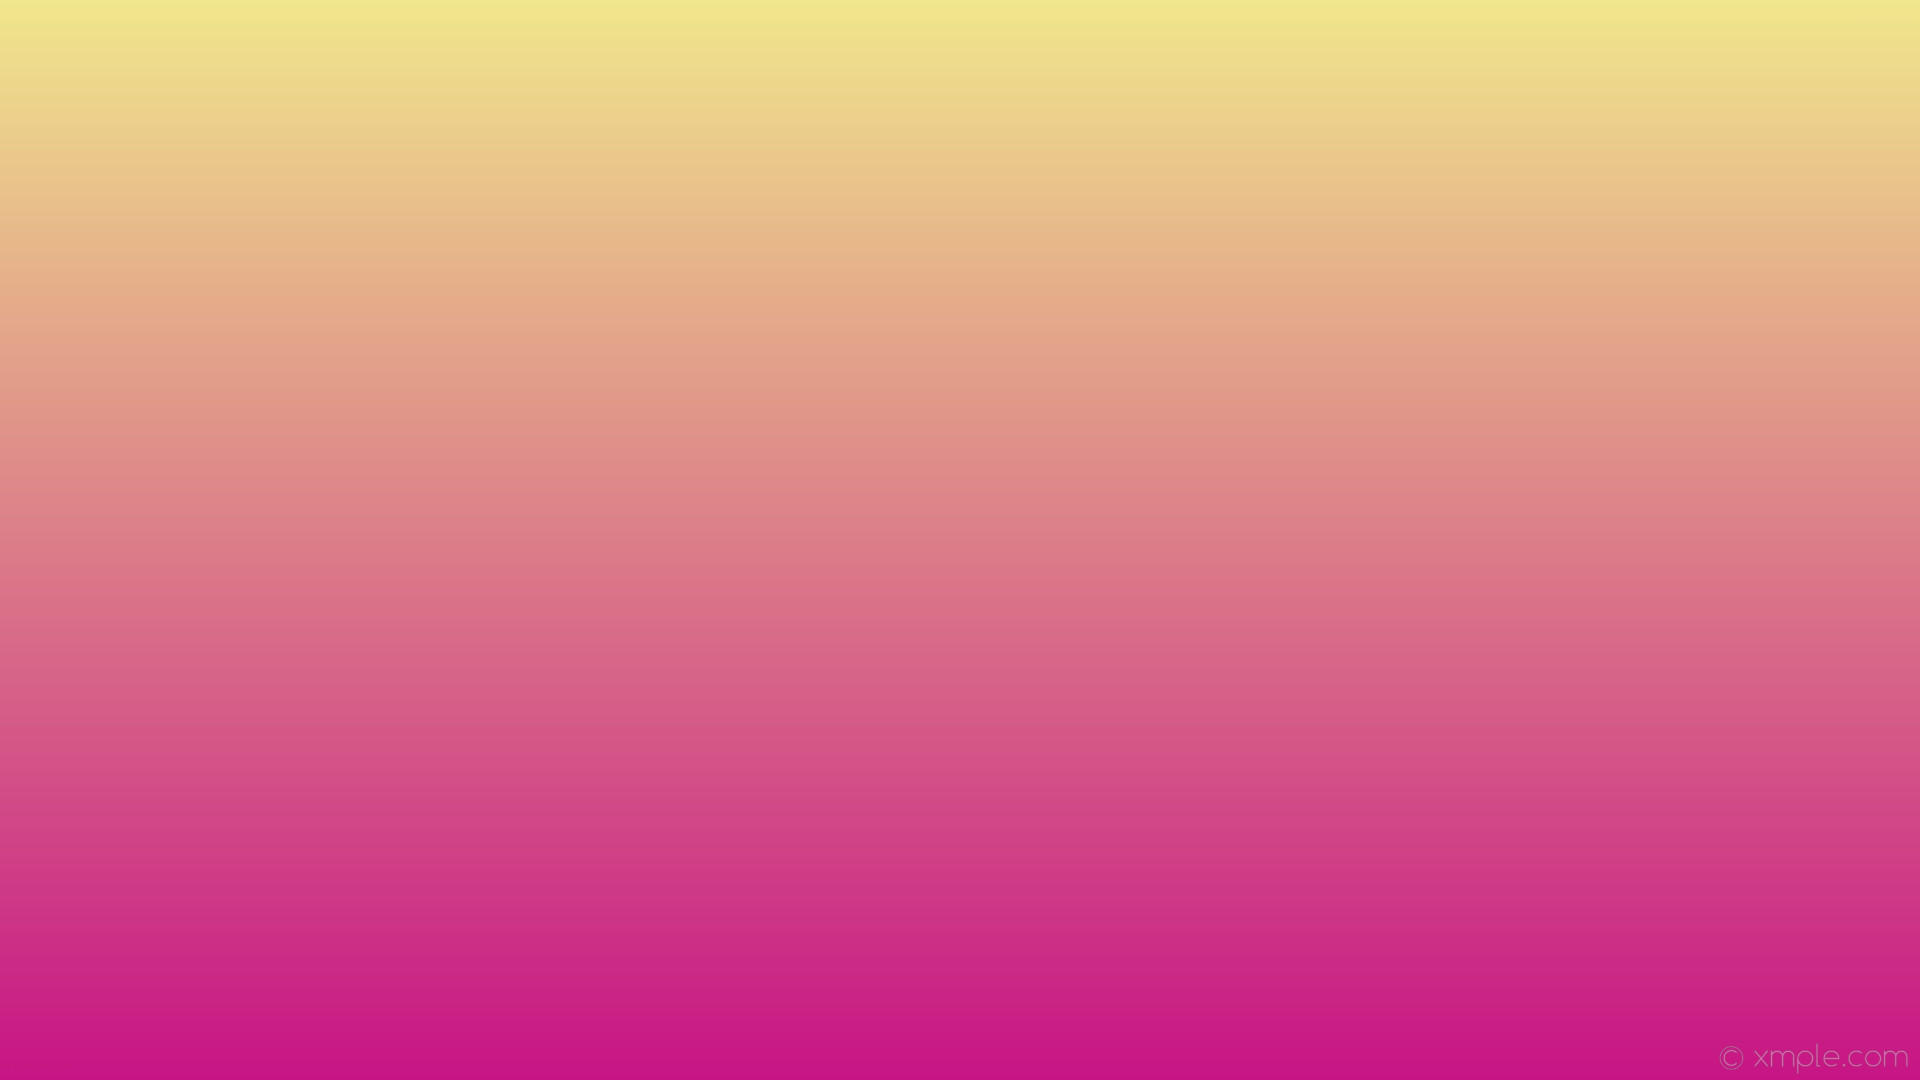 1920x1080 wallpaper linear yellow pink gradient khaki medium violet red #f0e68c  #c71585 90°